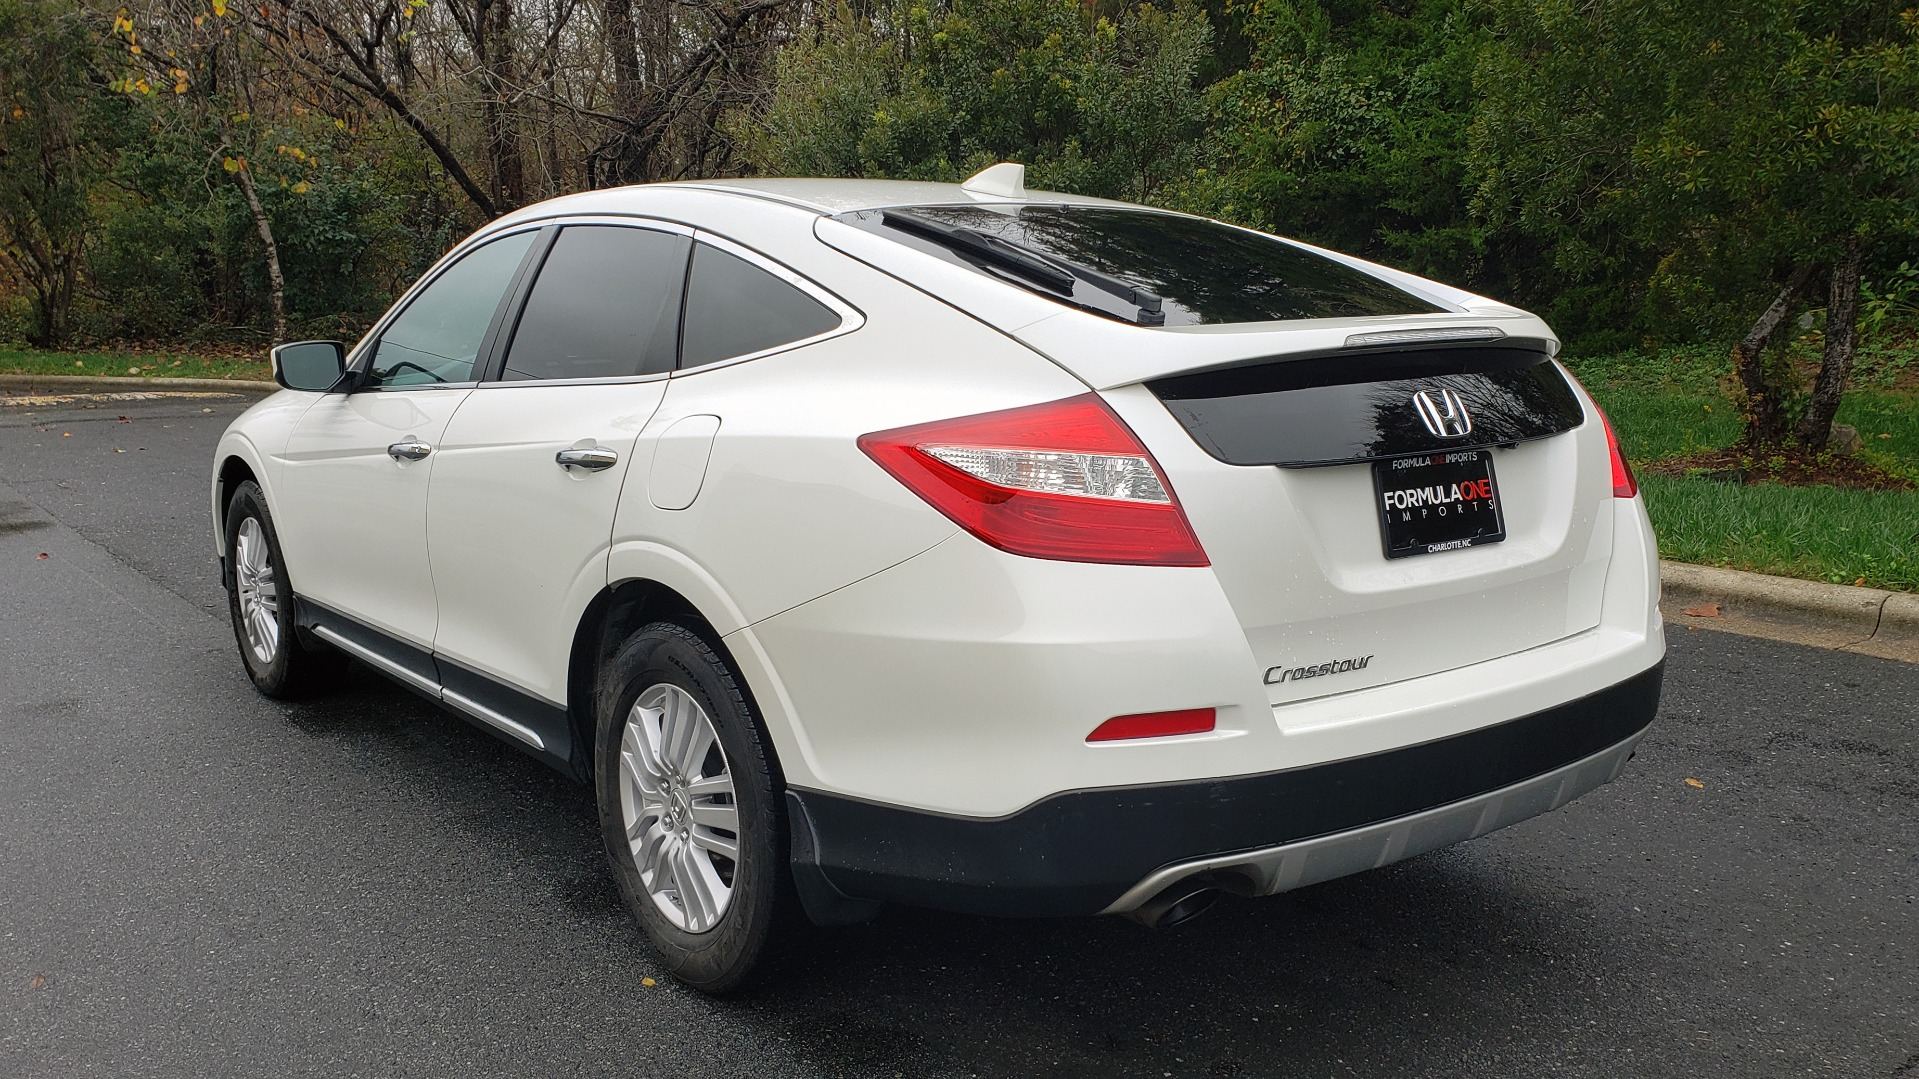 Used 2015 Honda CROSSTOUR EX-L 2WD / SUNROOF / REARVIEW / 17-IN ALLOY WHEELS for sale $11,595 at Formula Imports in Charlotte NC 28227 3